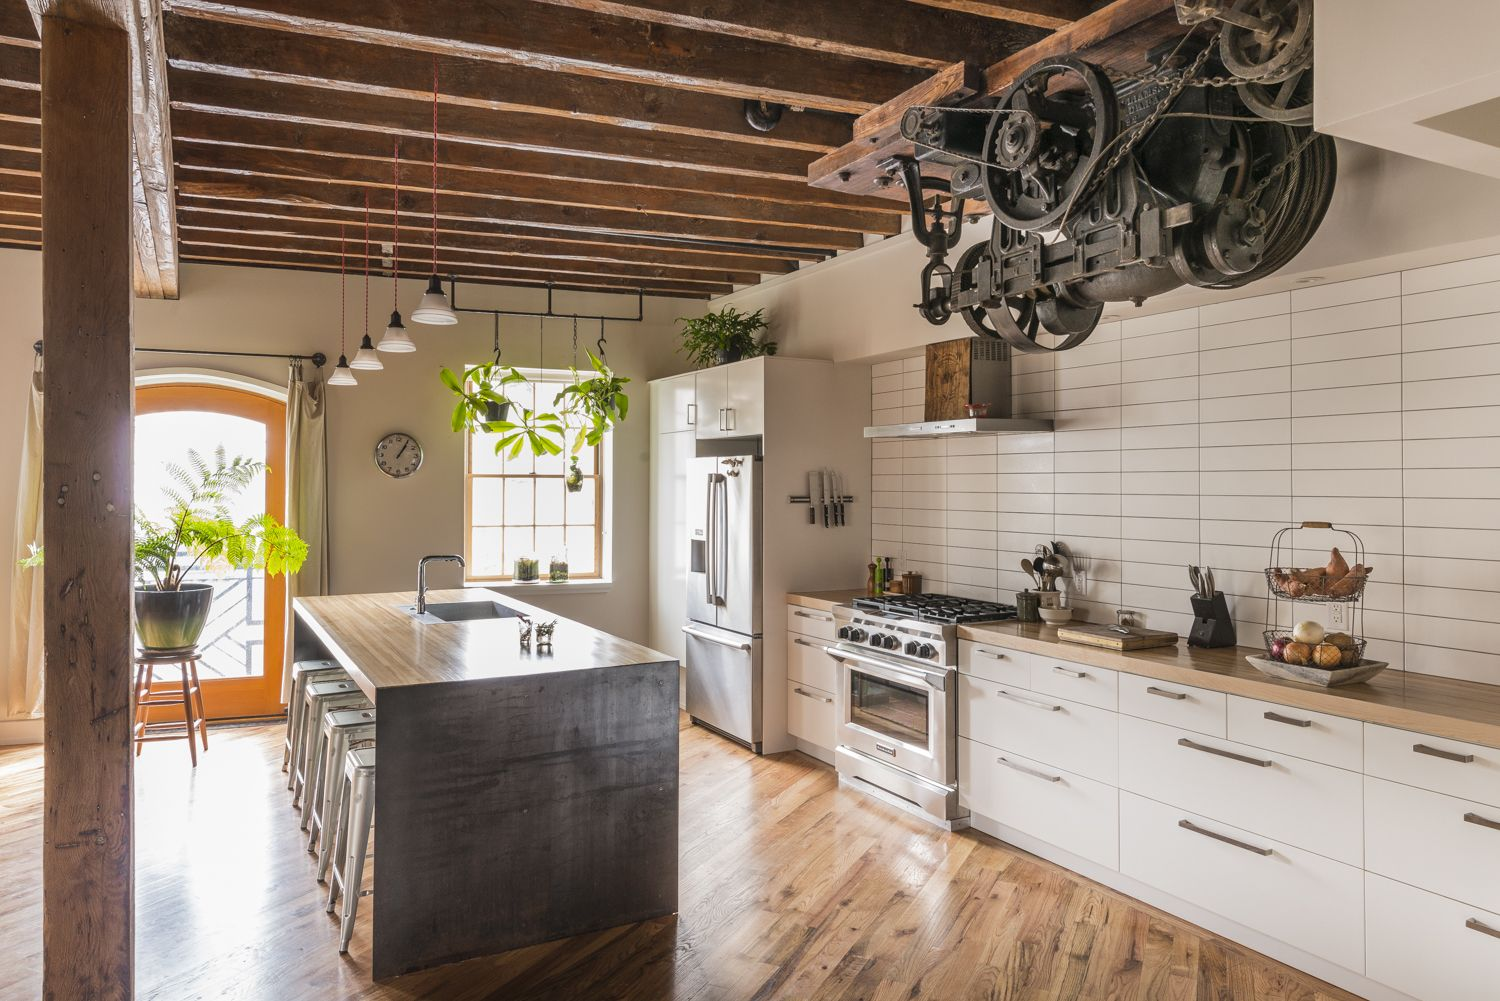 13 Amazing Home Renovations - Converted Home Makeovers